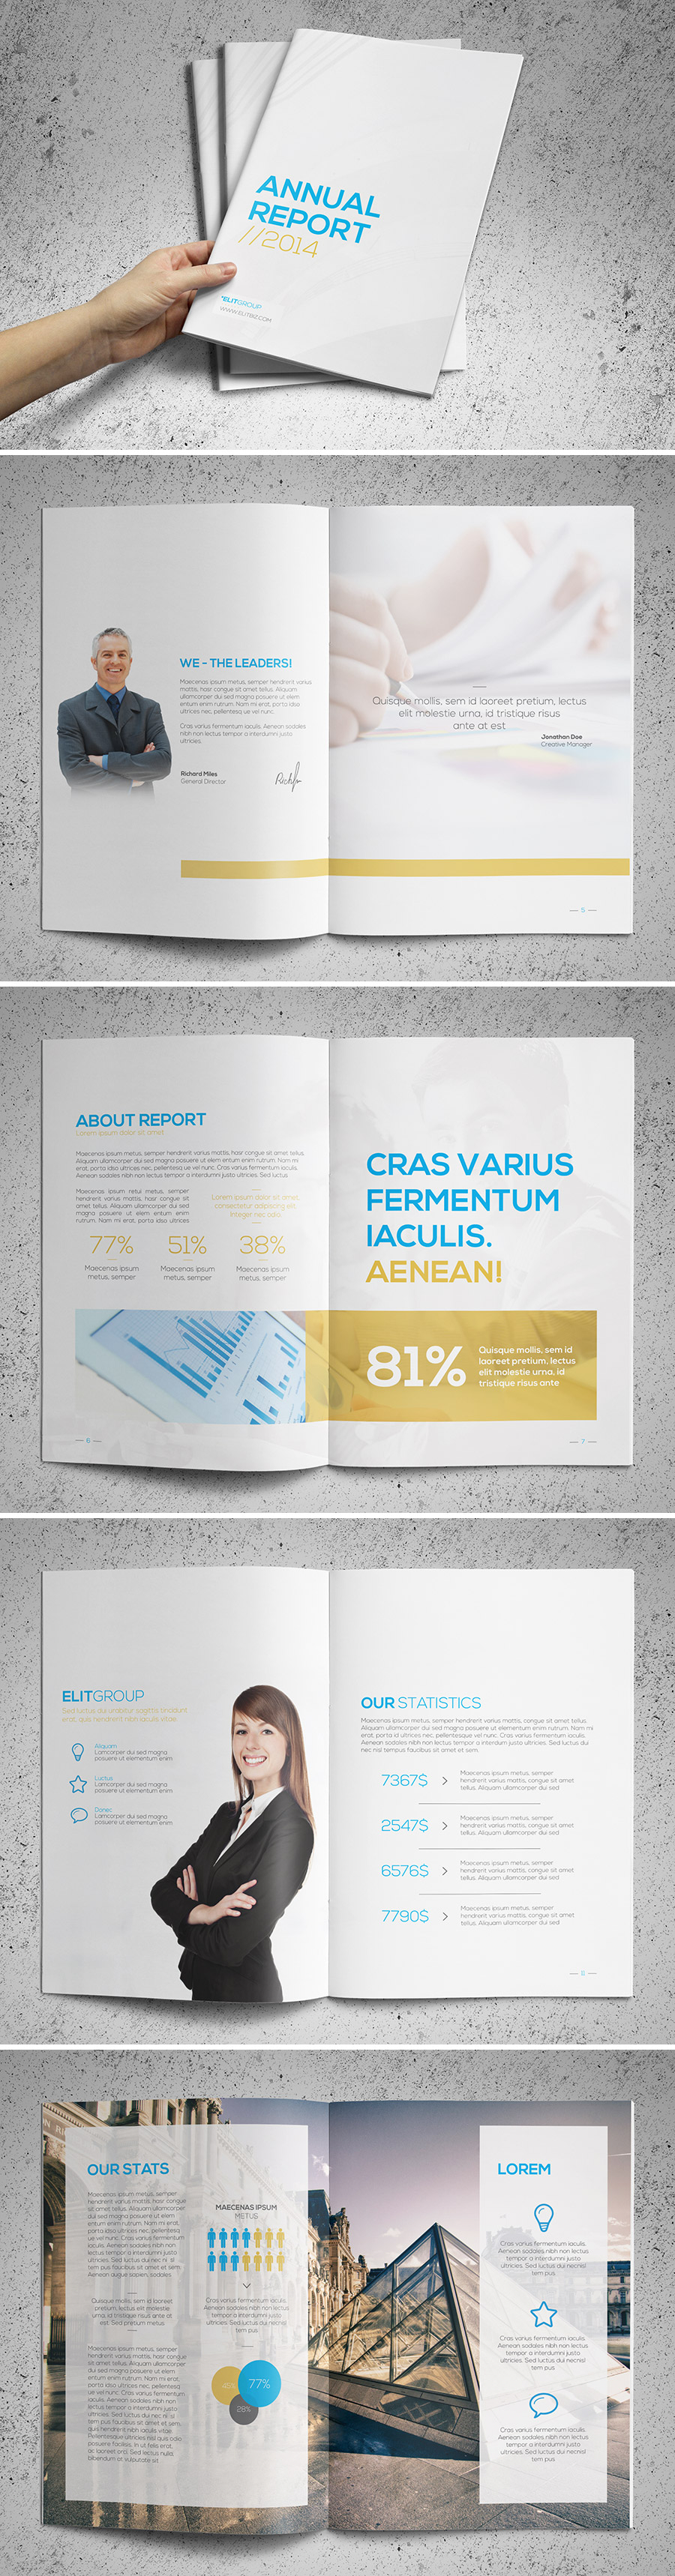 clean annual report